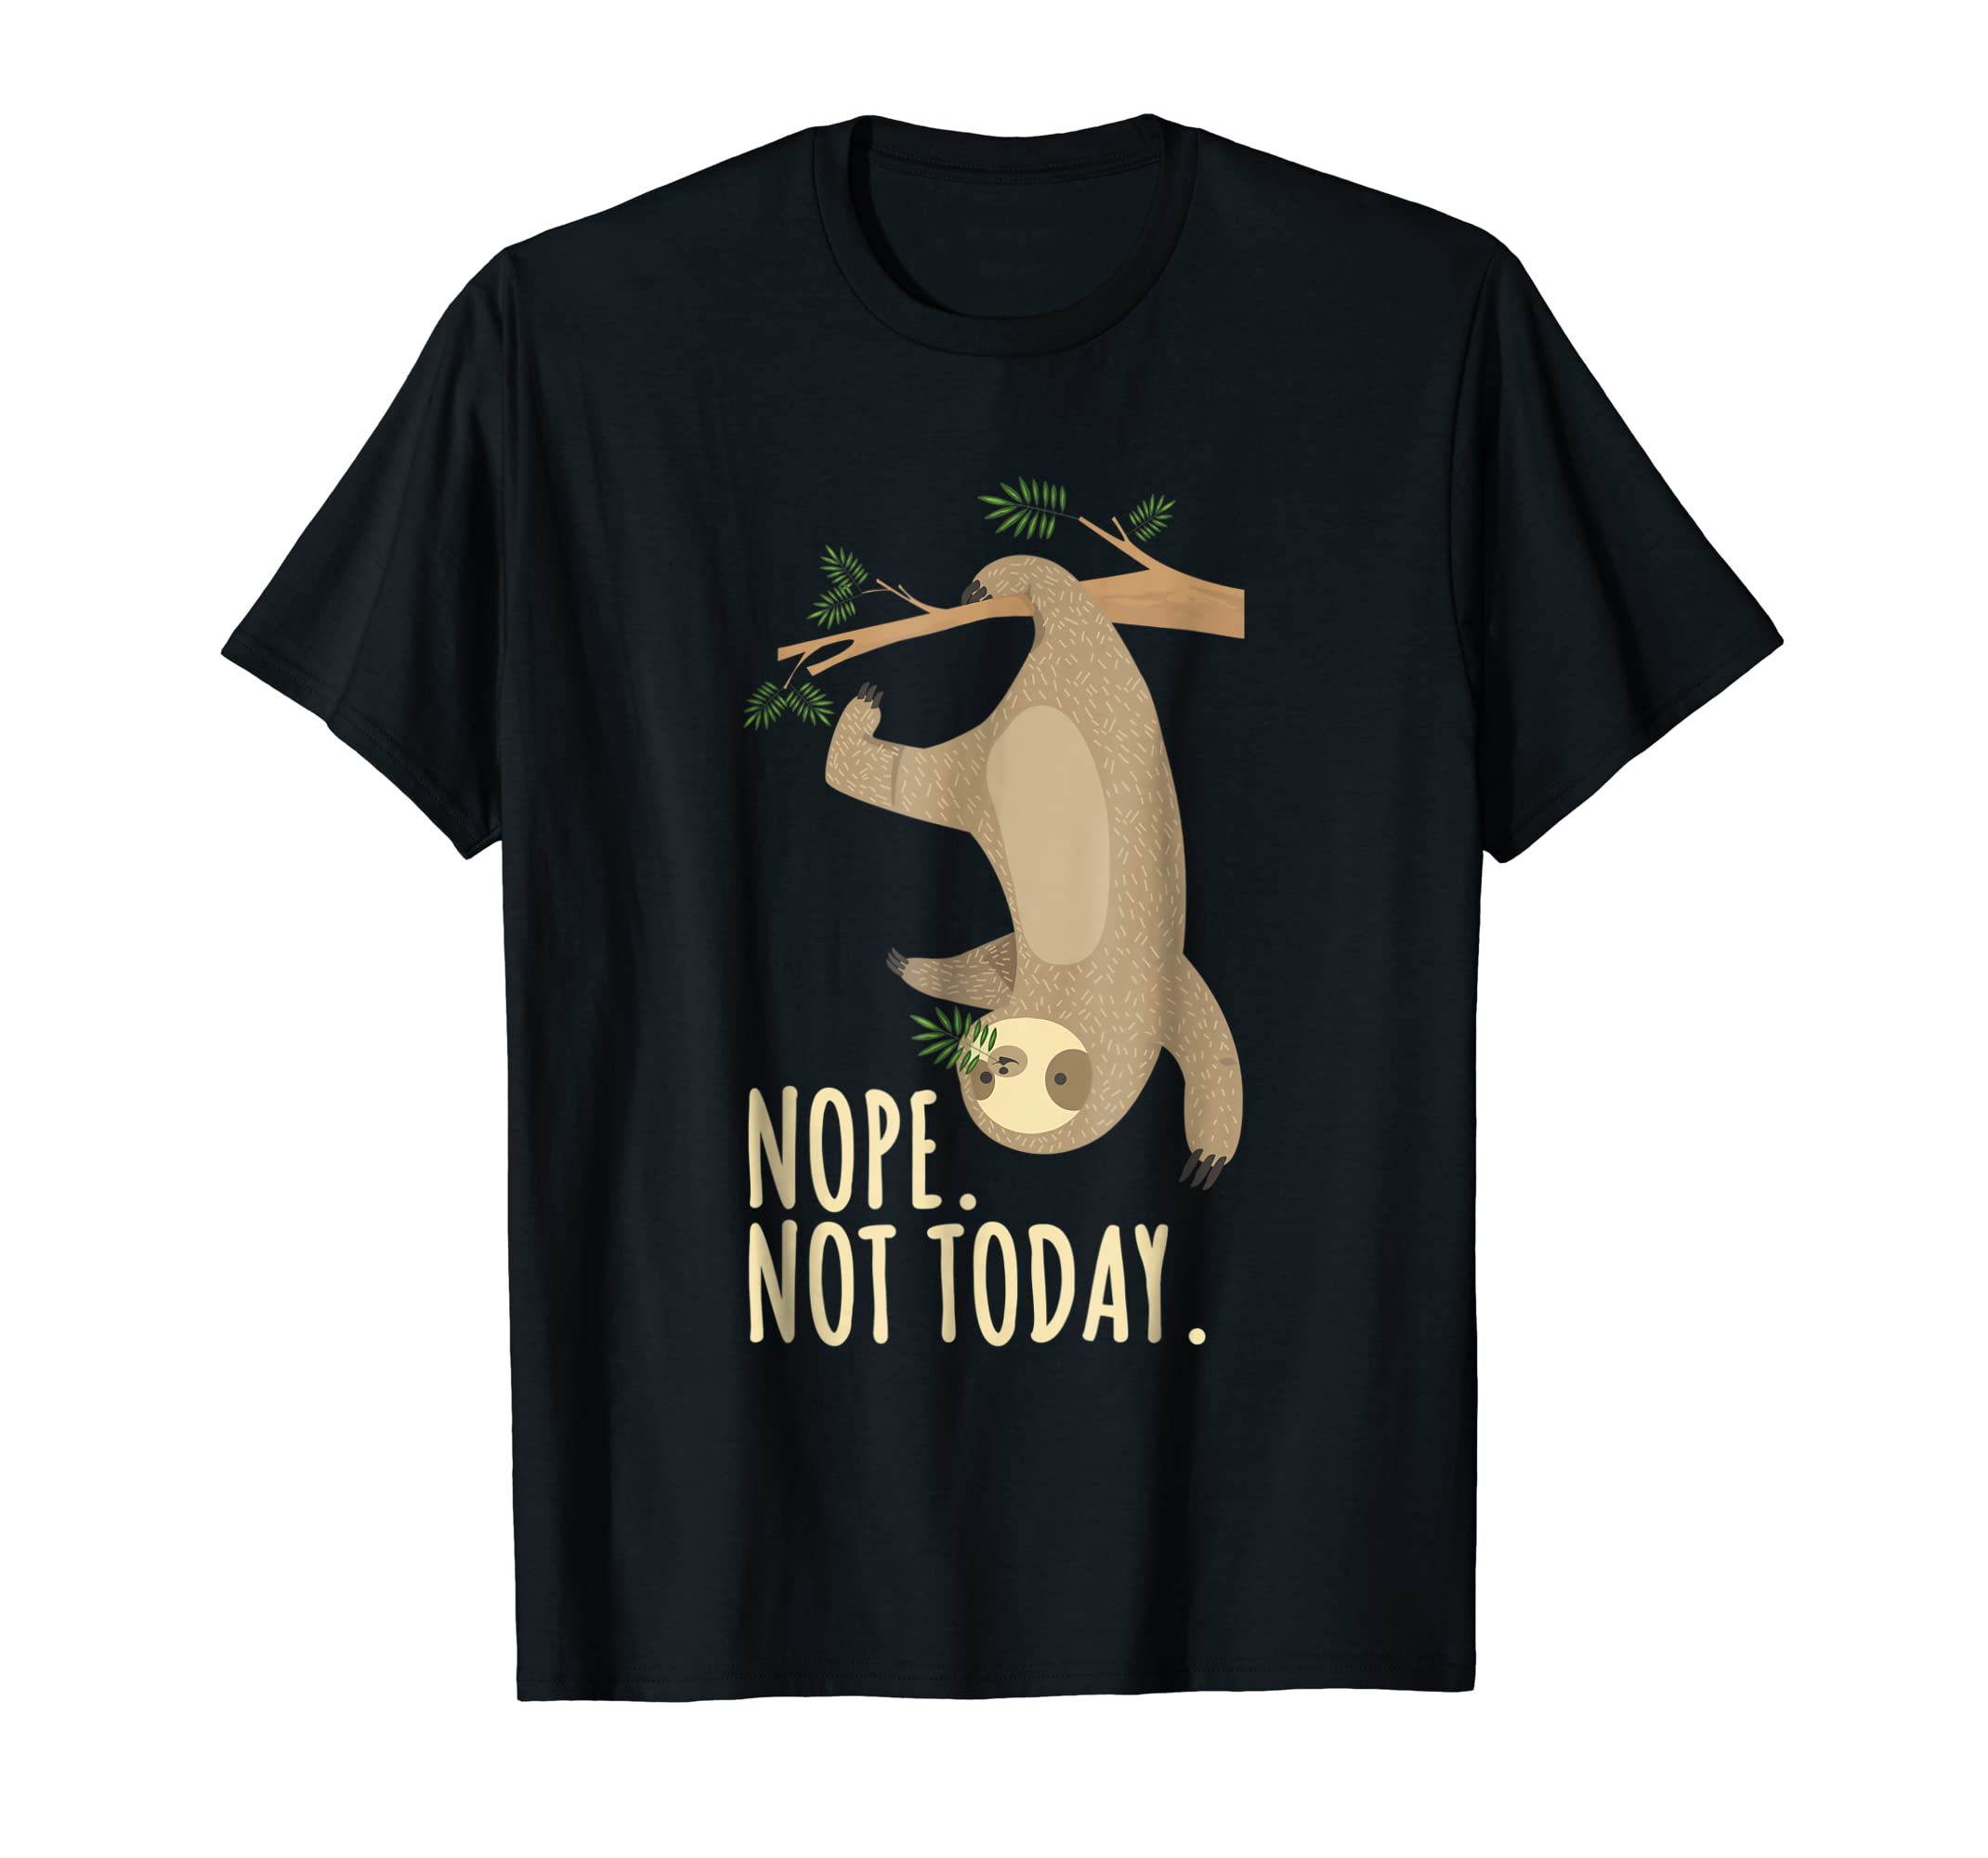 758b4973 Amazon.com: Nope Not Today Sloth Shirt Funny Birthday Gift: Clothing